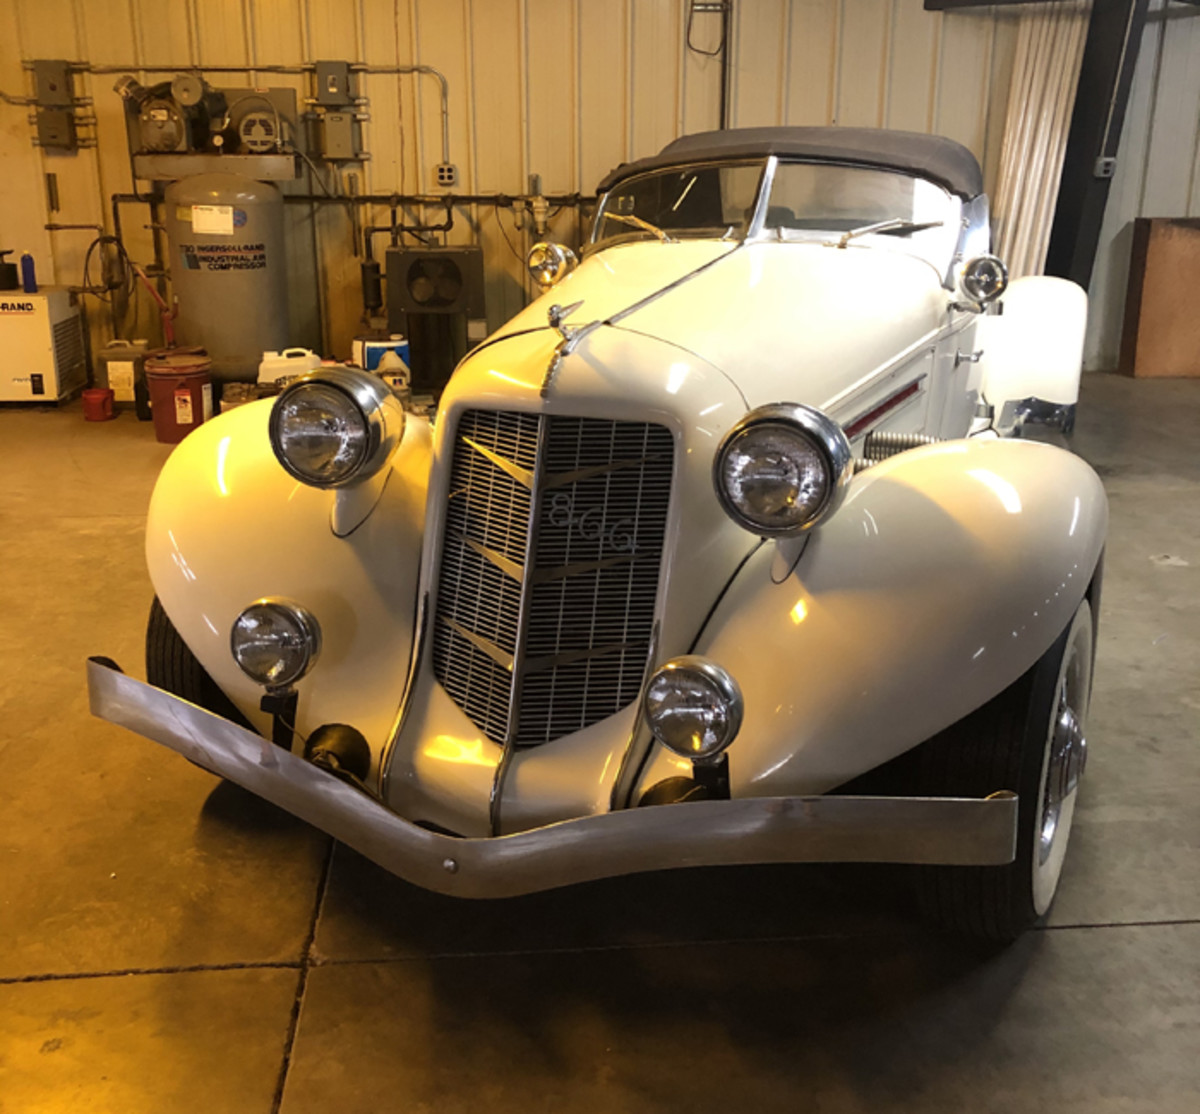 Mr. Adair also had a replica Auburn Speedster that will be sold by his estate.